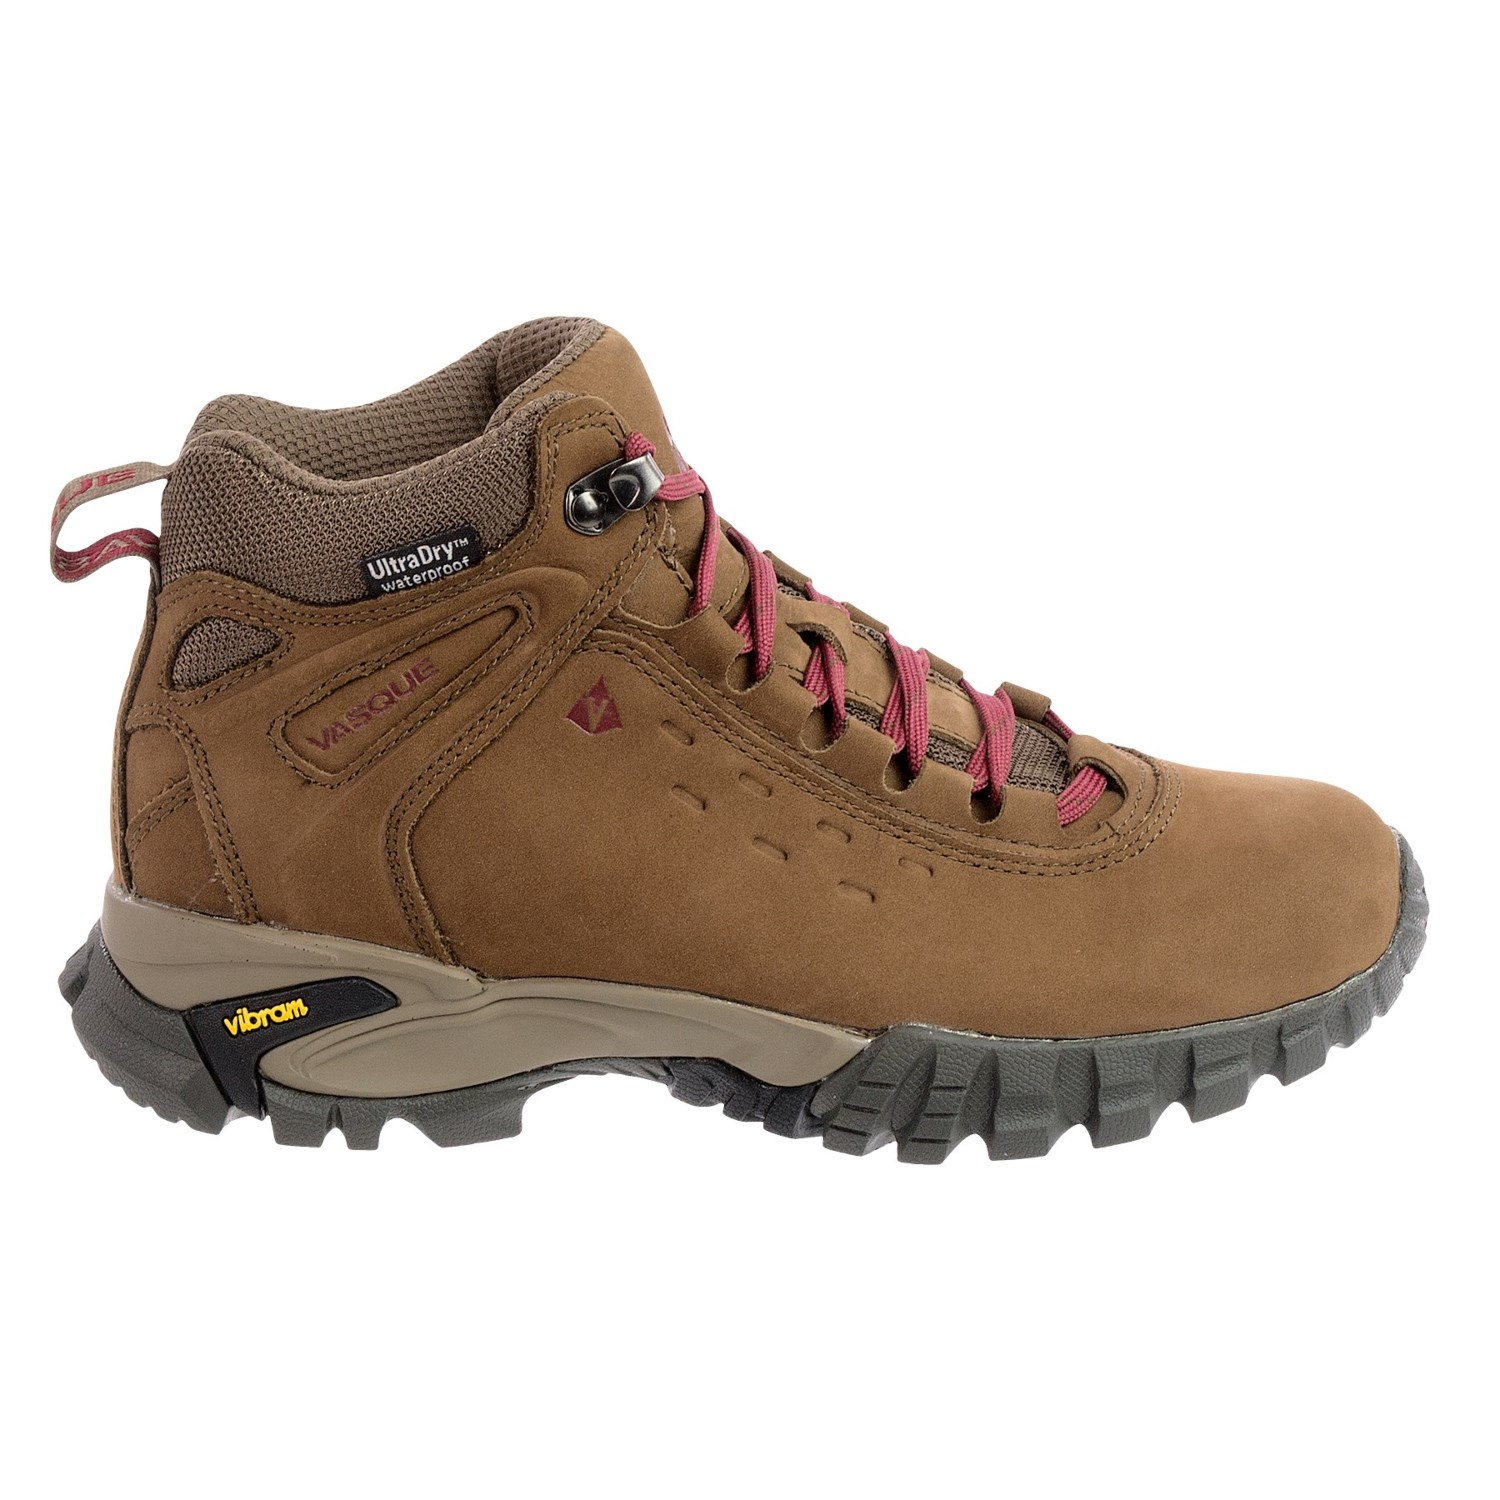 9731m 4 Vasque Talus Ultradry Hiking Boots Waterproof